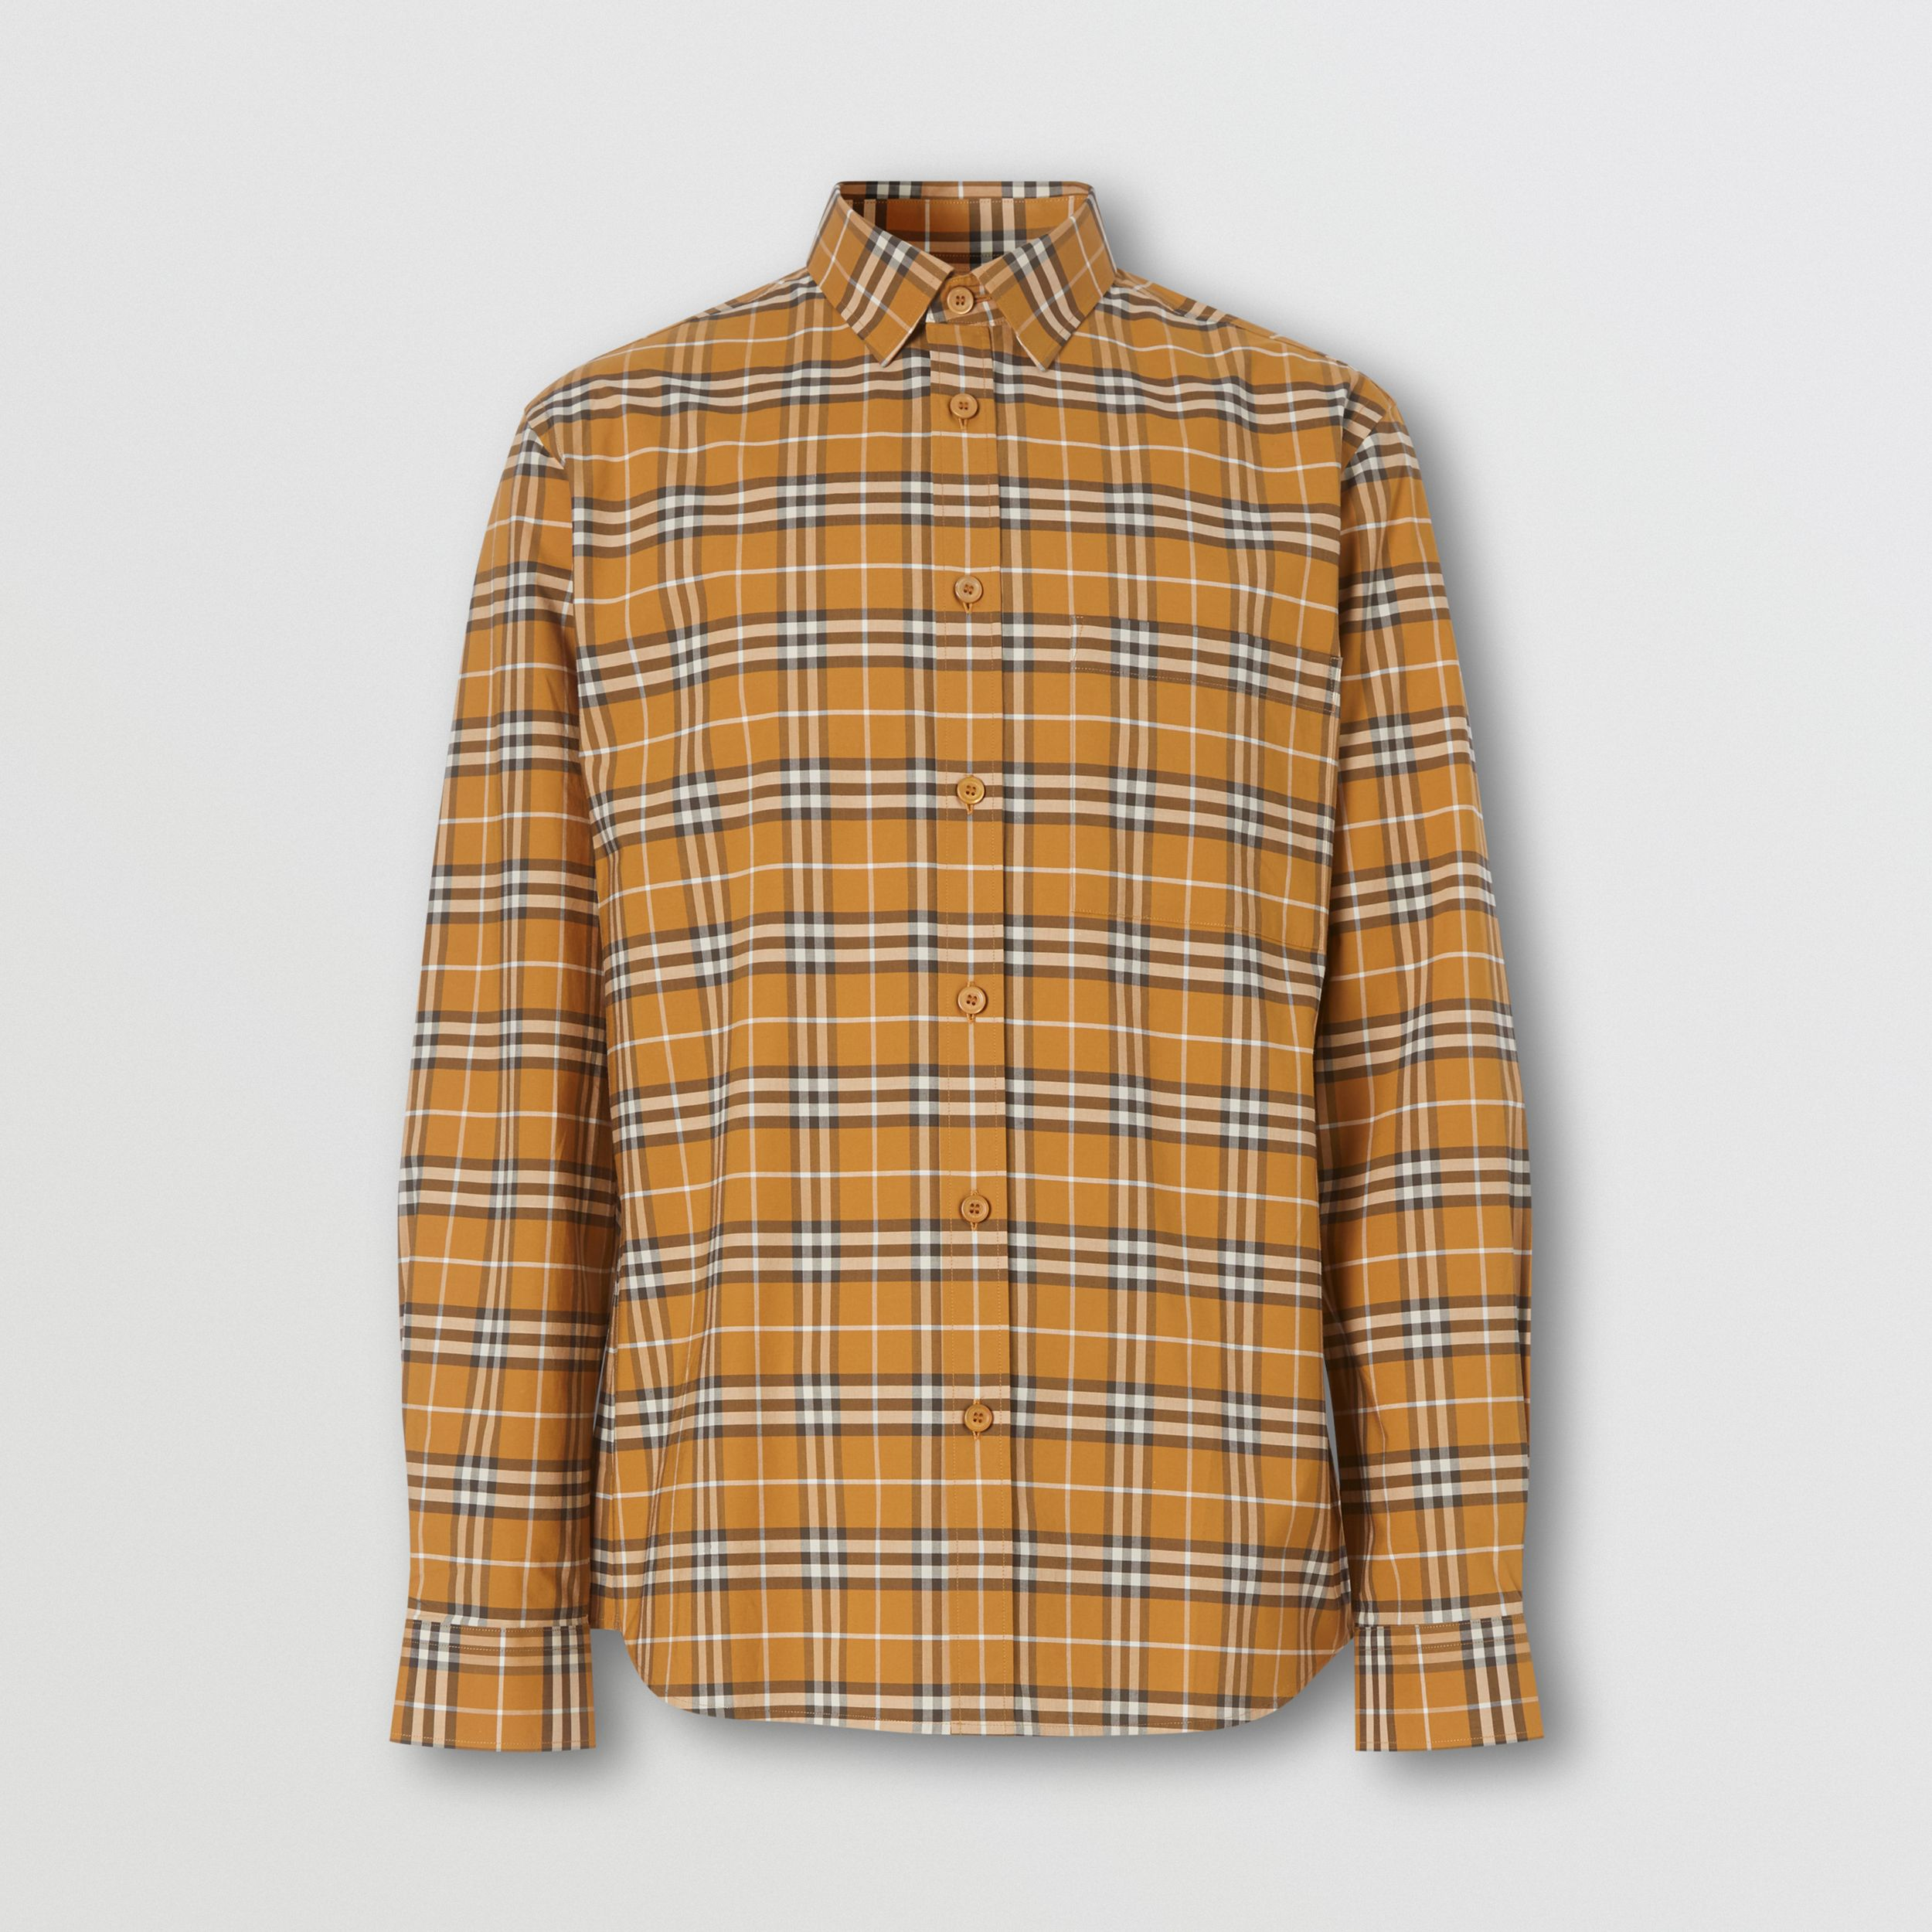 Small Scale Check Stretch Cotton Shirt in Bright Toffee - Men | Burberry - 4